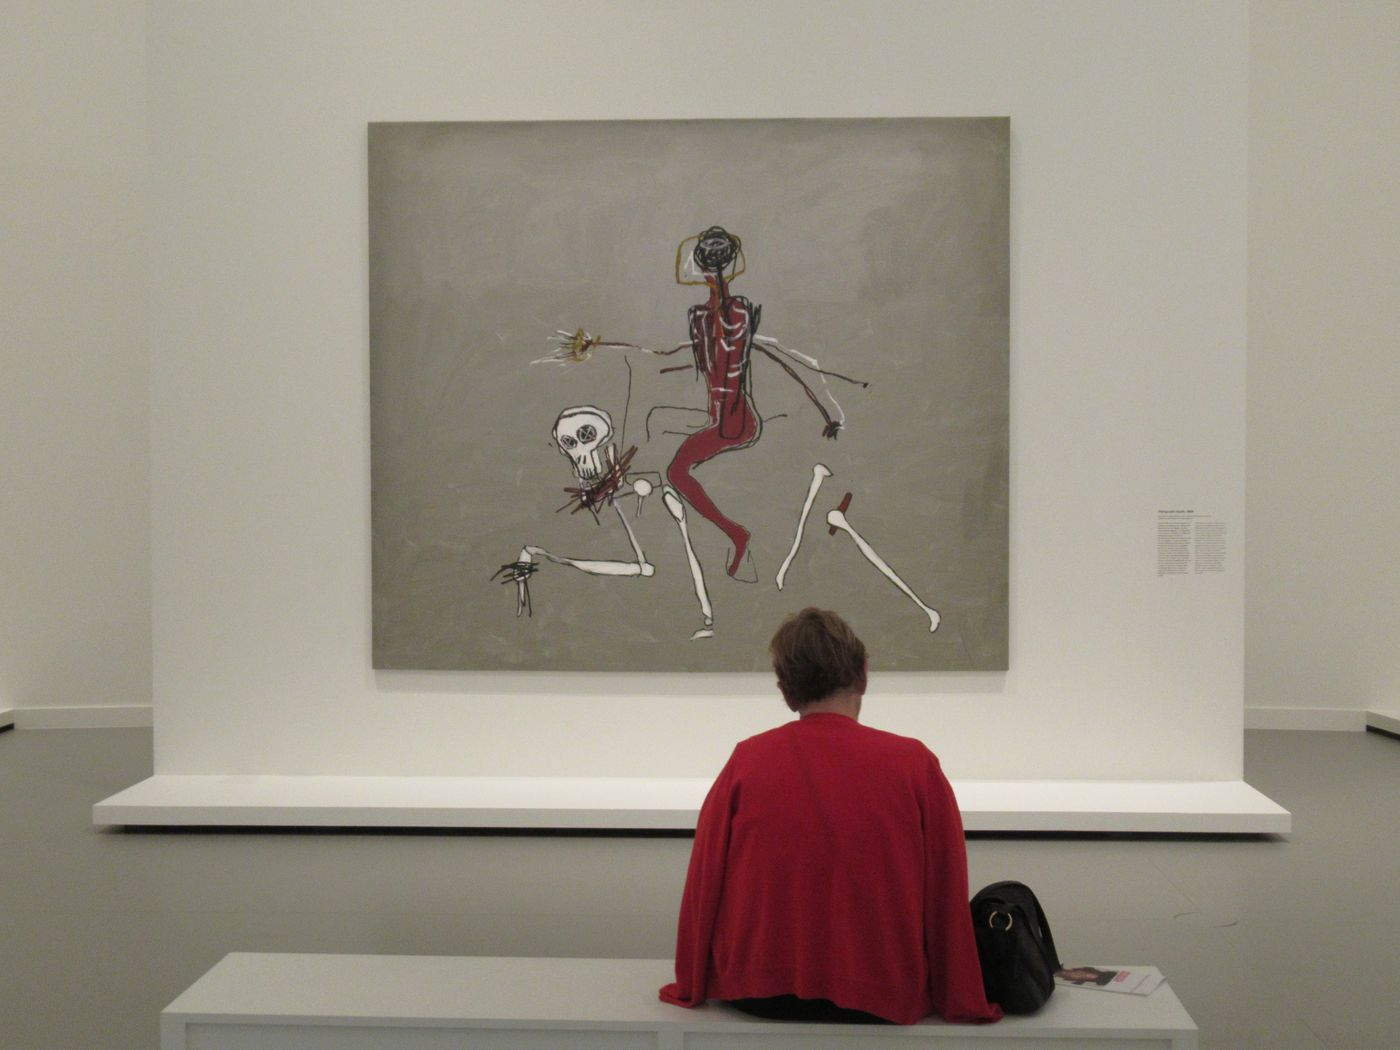 A visitor in front of Jean-Michel Basquiat's 'Riding with Death' in Paris, France on Oct. 4, 2018. To Dickinson professor Jerry Philogene, the painting reminds of the vodou spirit Baron Samedi.